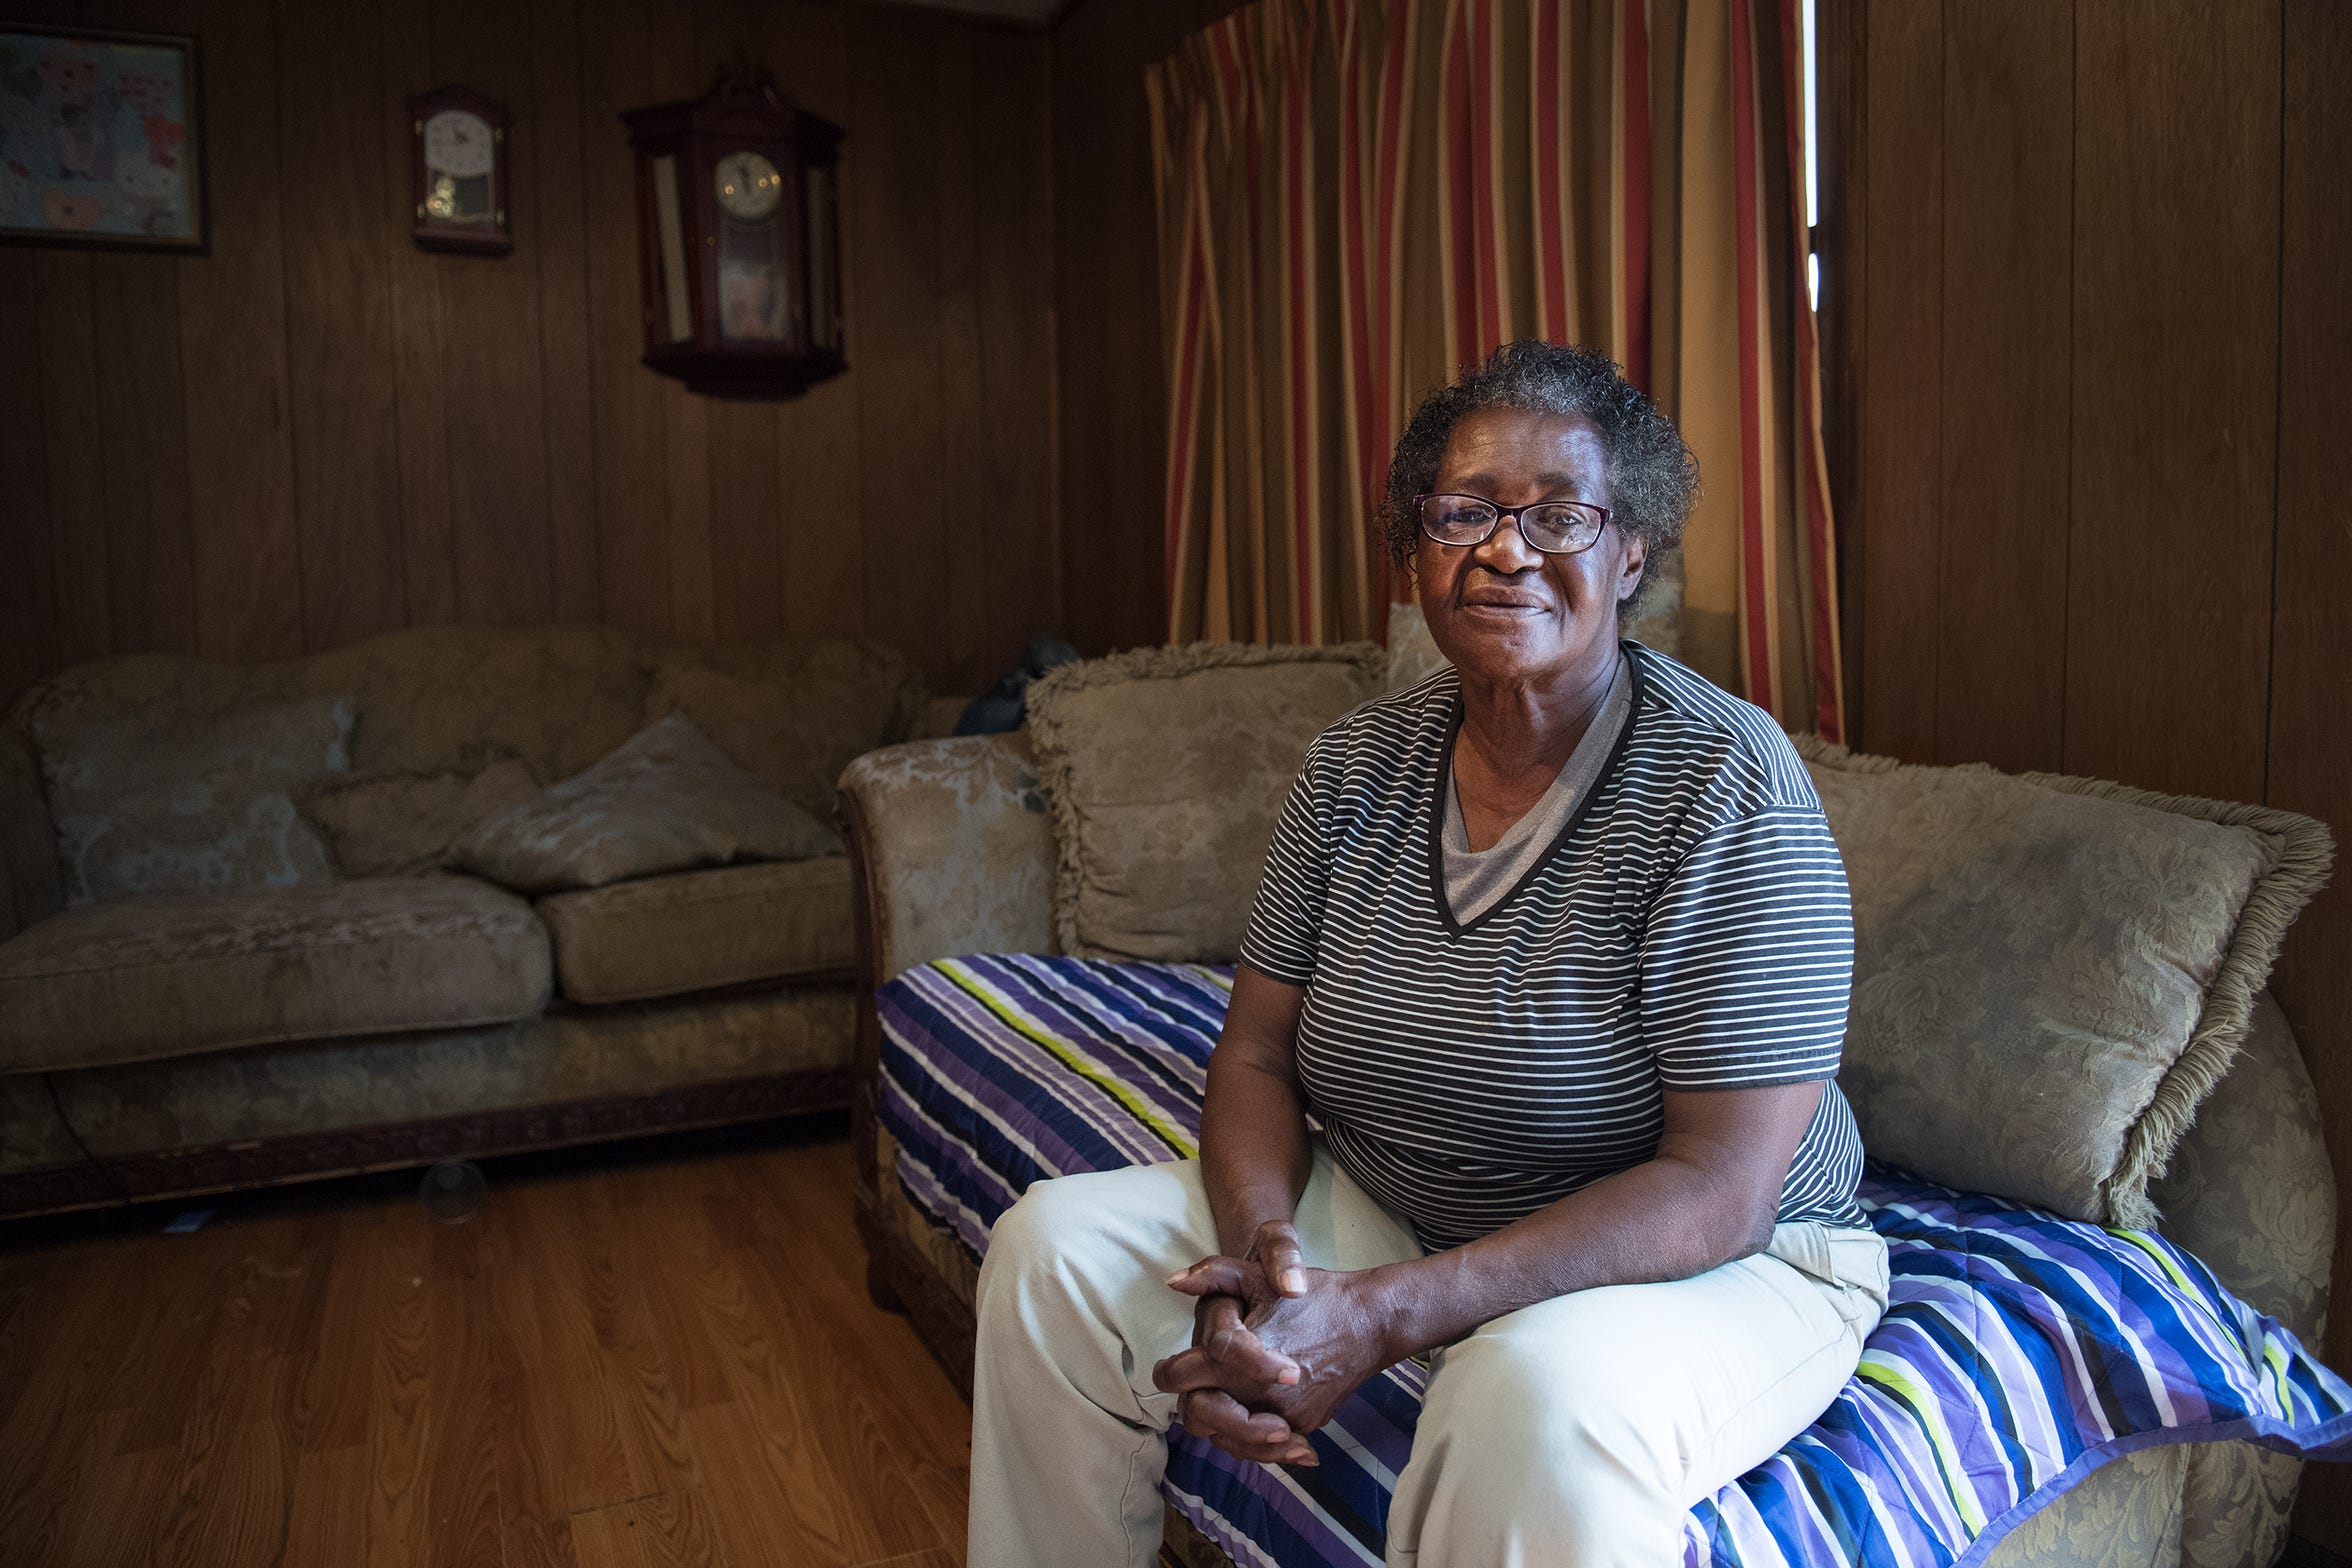 Ella Bromell sits in her home in Conway on Feb. 21, 2018. These days, she rarely leaves her yard — she said she lives in fear of losing her 1,000-square-foot home. She's endured years of efforts by the city of Conway to seize her house, an attempt to shut down drug dealers by going after Bromell.